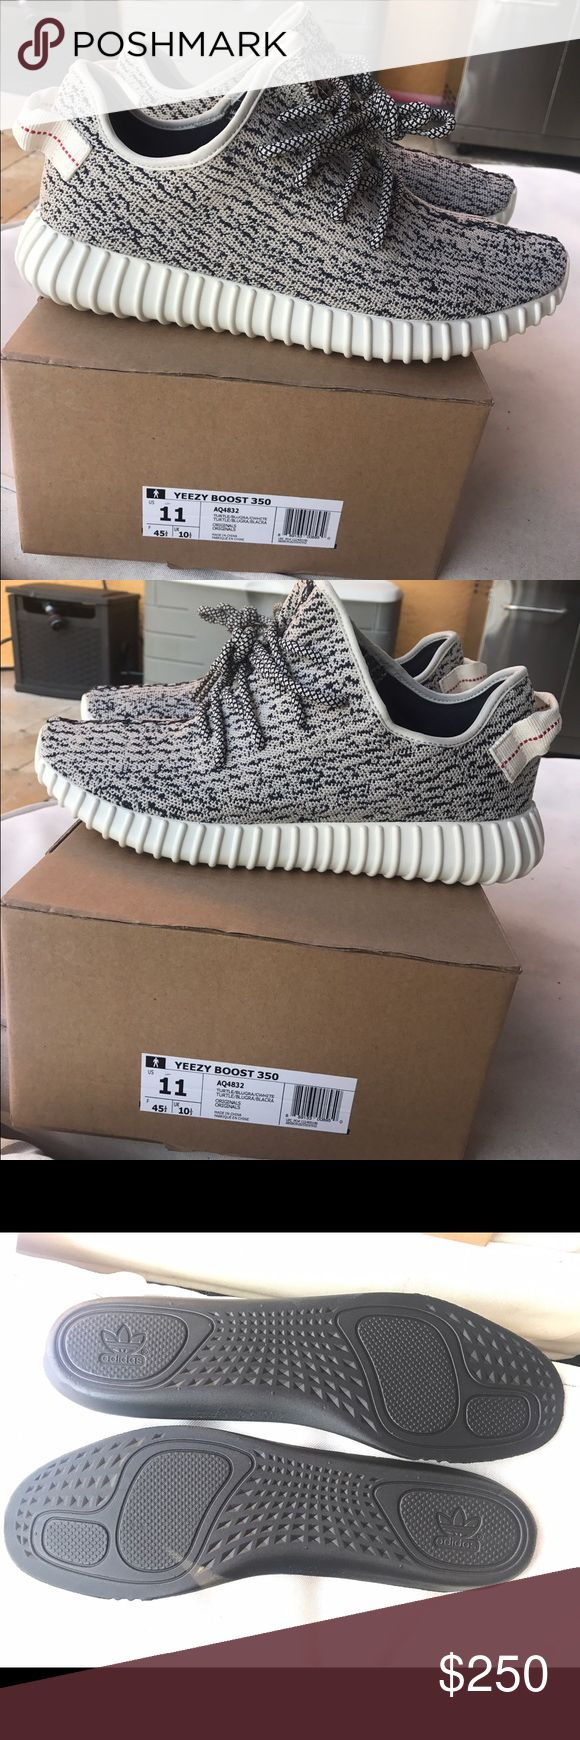 Yeezy Boost 350 Turtle Dove Size 11 brand new , also have size 10 available Adidas Shoes Athletic Shoes